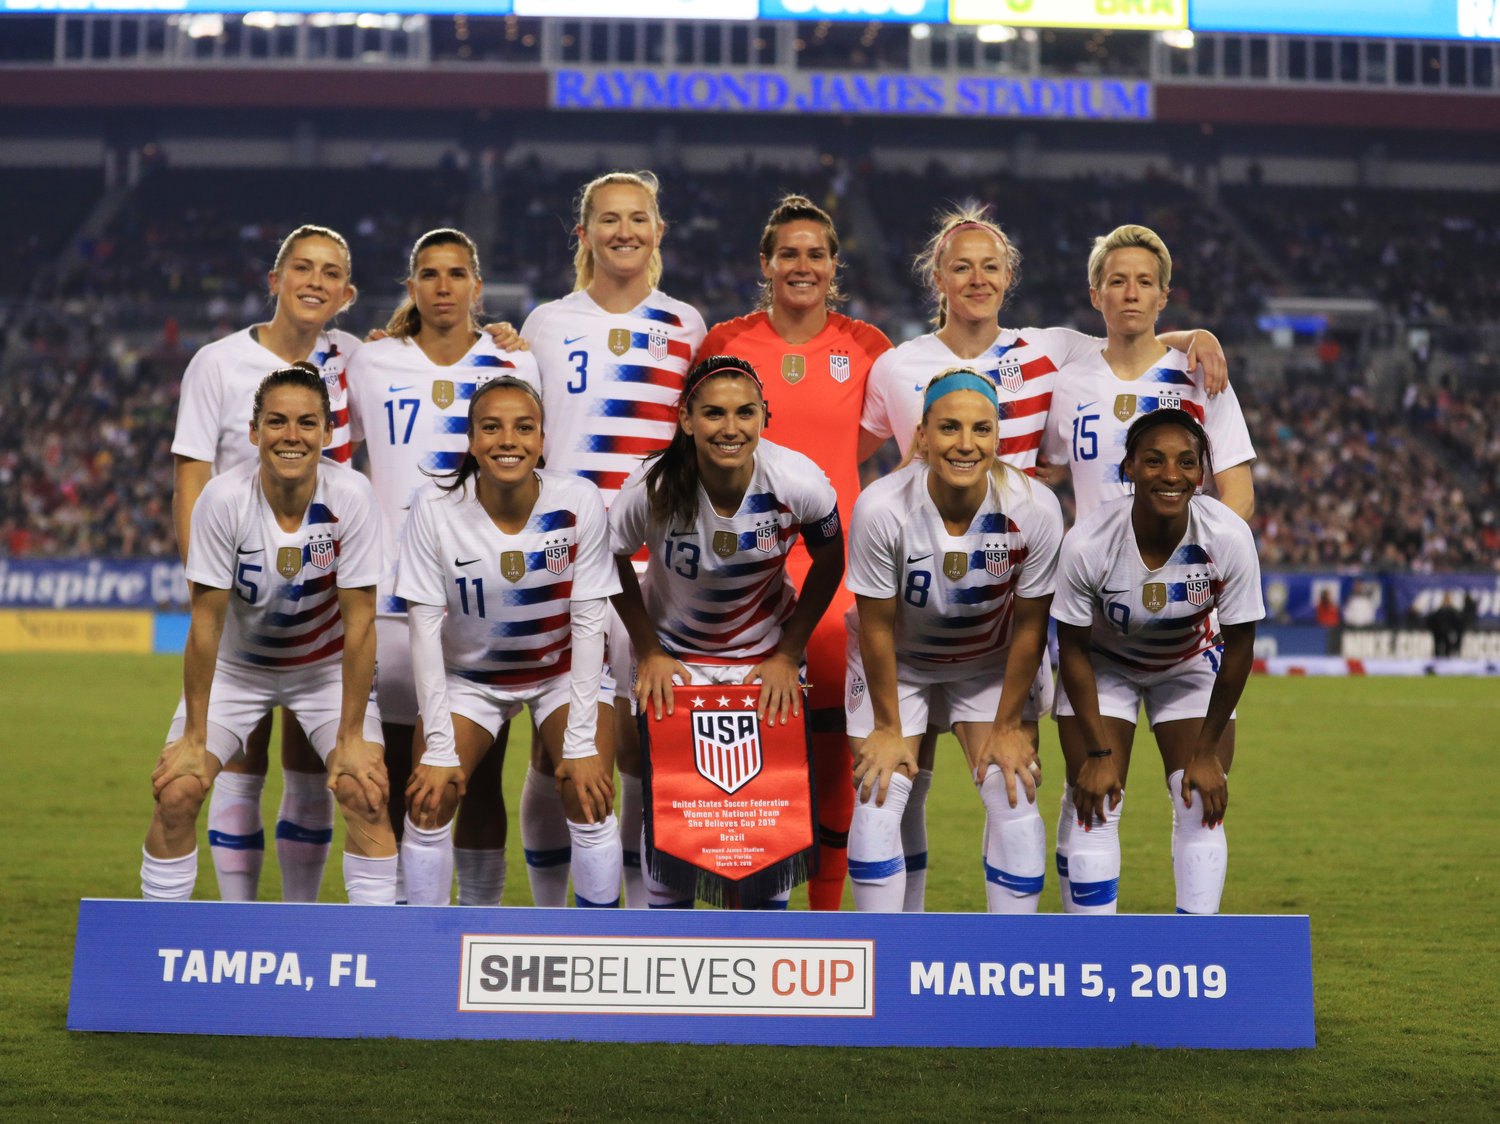 Members of the U.S. women's national soccer team filed a lawsuit in March 2019 against U.S. Soccer, accusing it of gender discrimination.   Mike Ehrmann/Getty Images